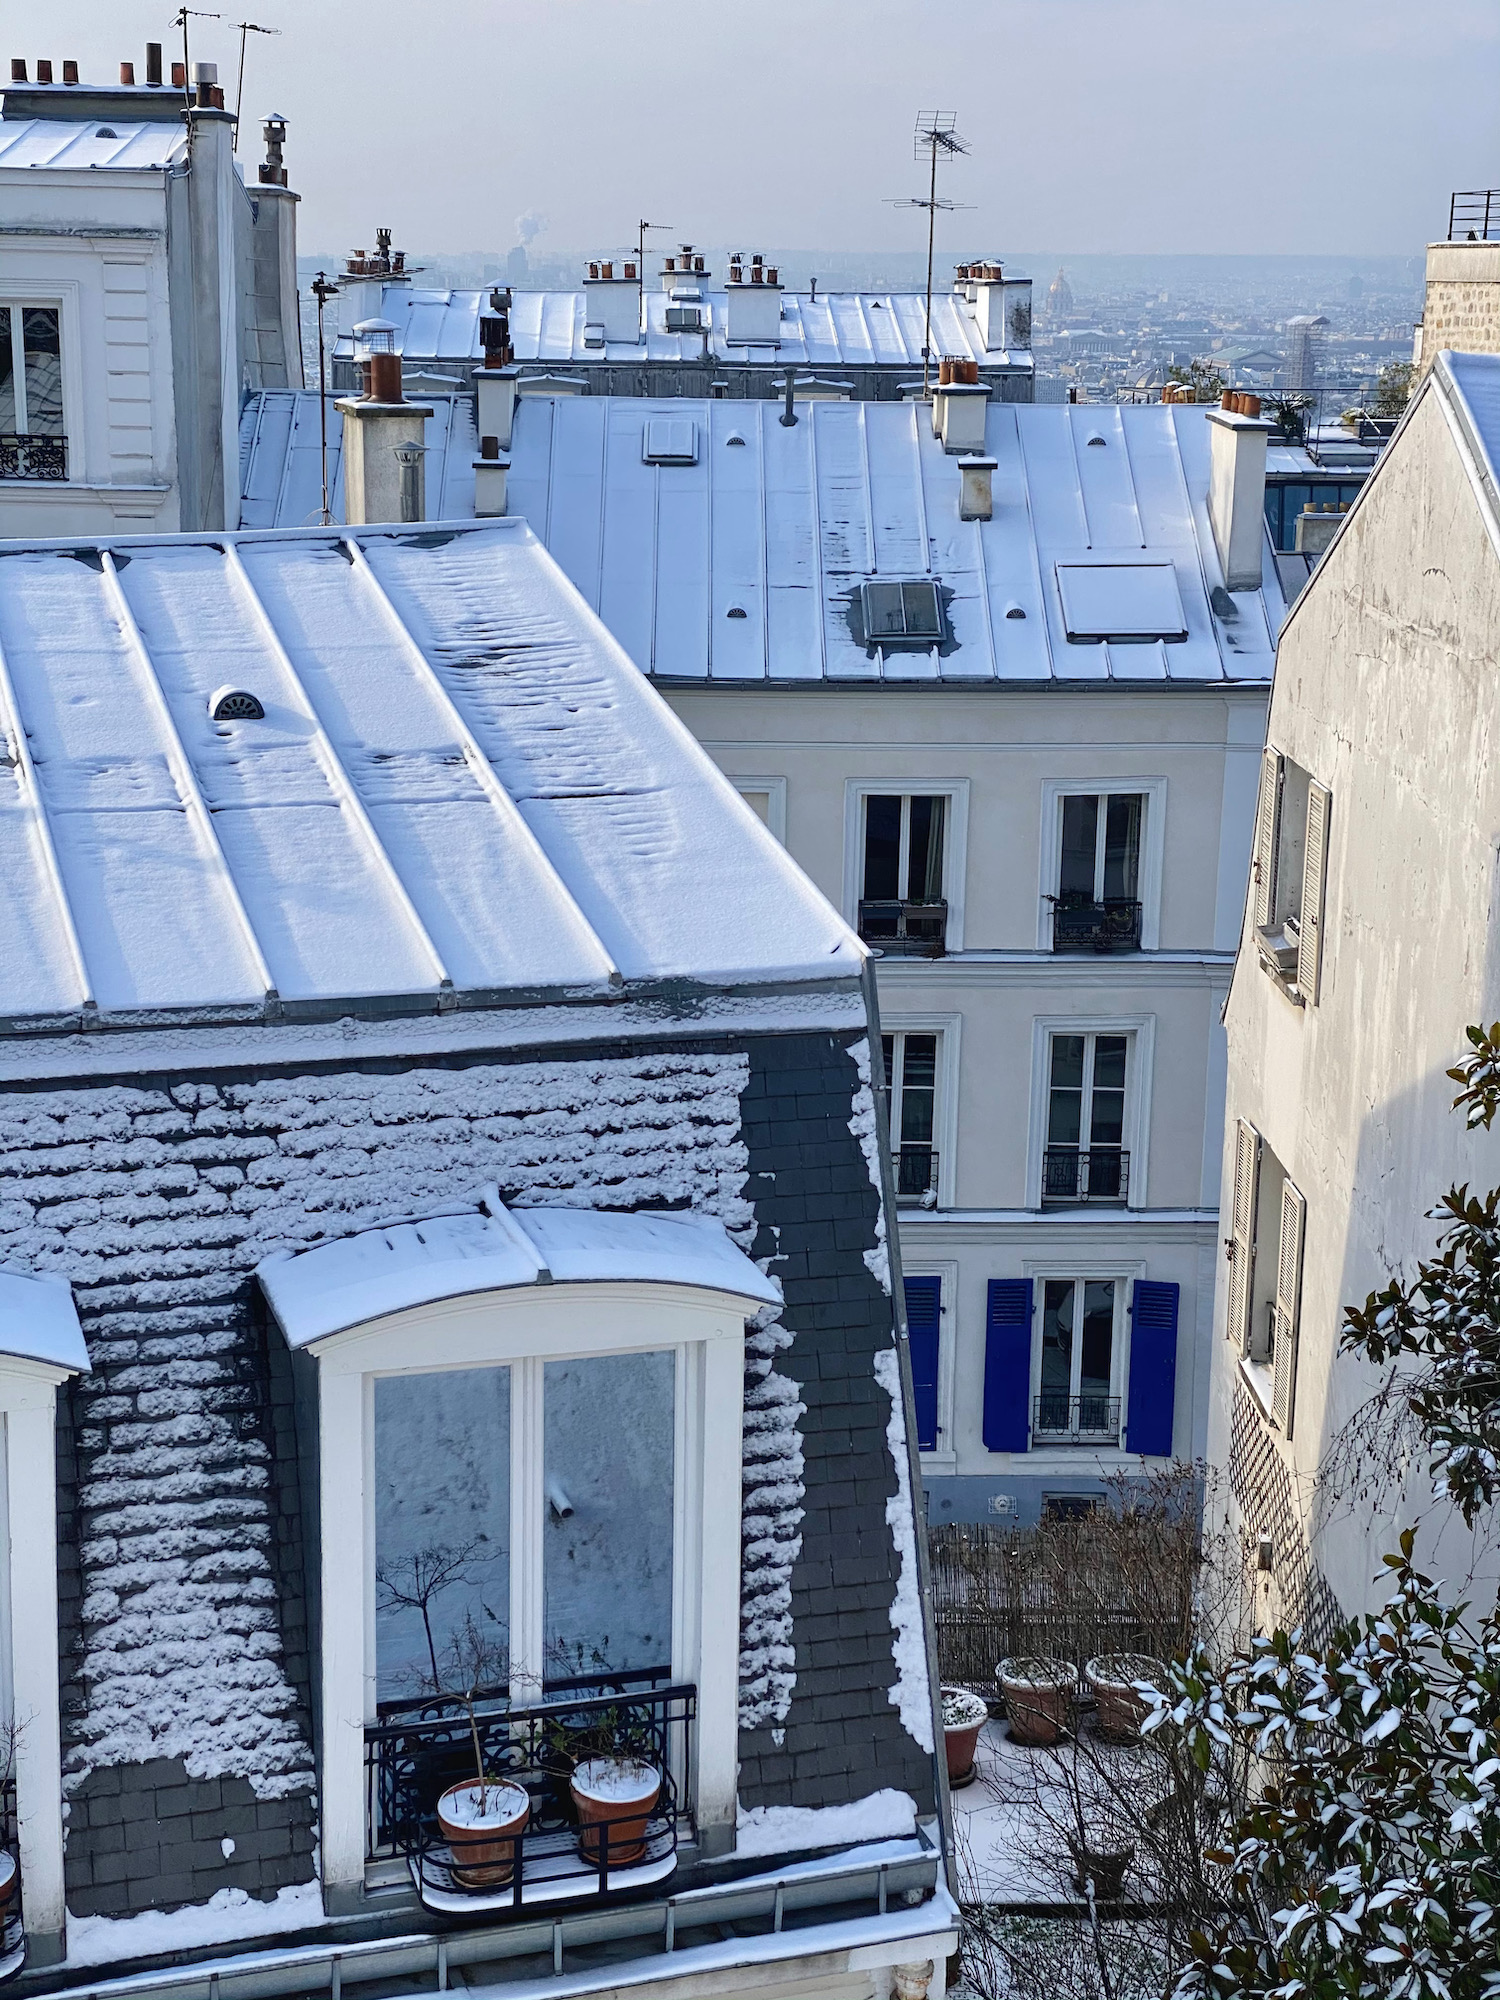 parisian rooftops covered in snow